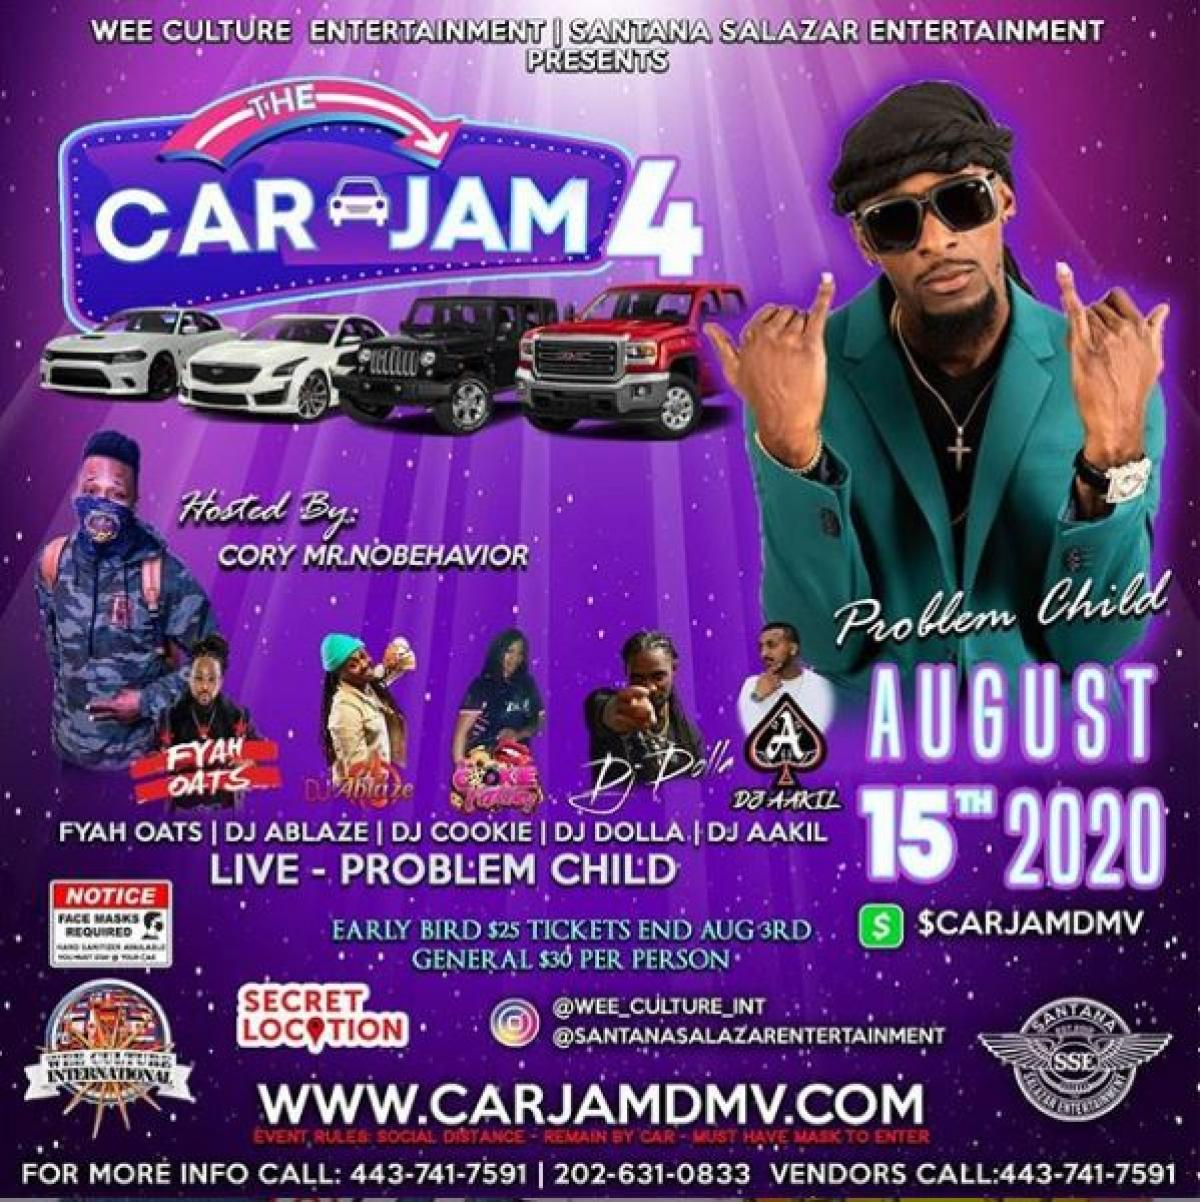 4th Edition Car Jam flyer or graphic.